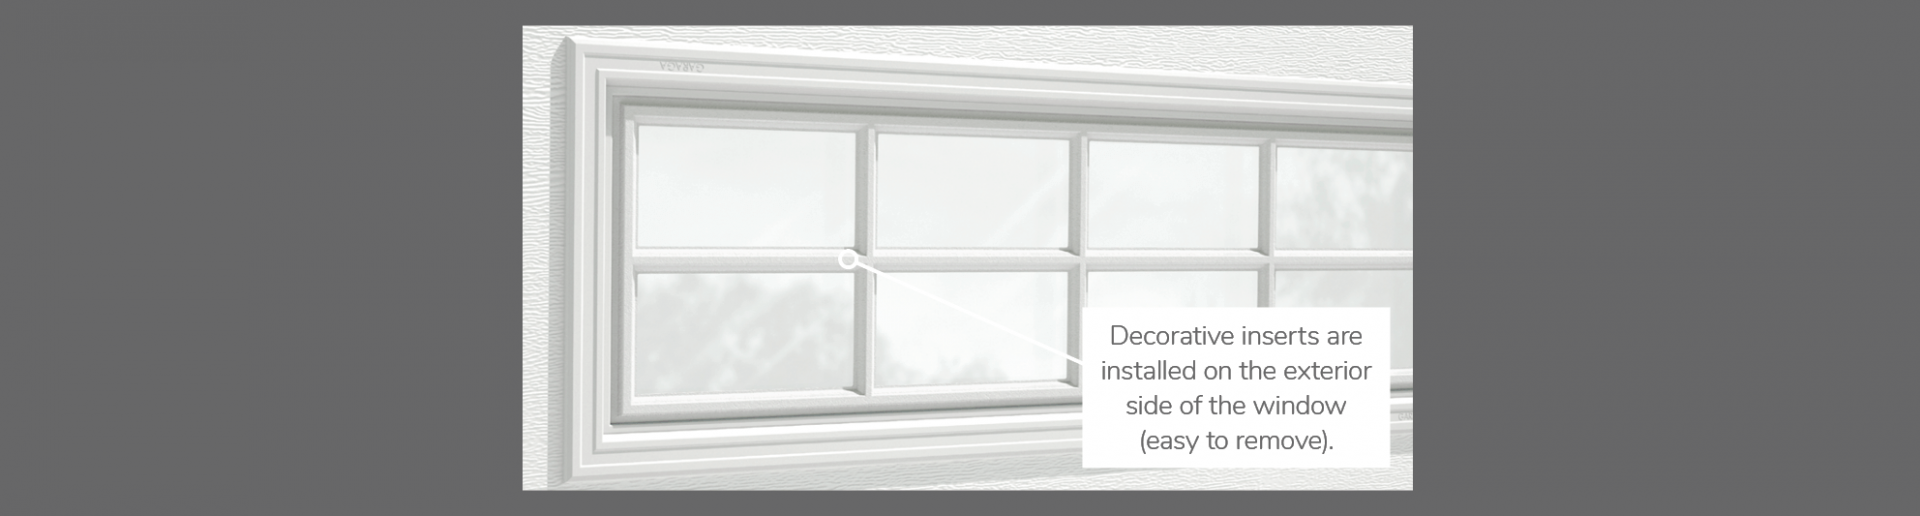 "Stockton Decorative Insert, 40"" x 13"", available for door R-16 and R-12"